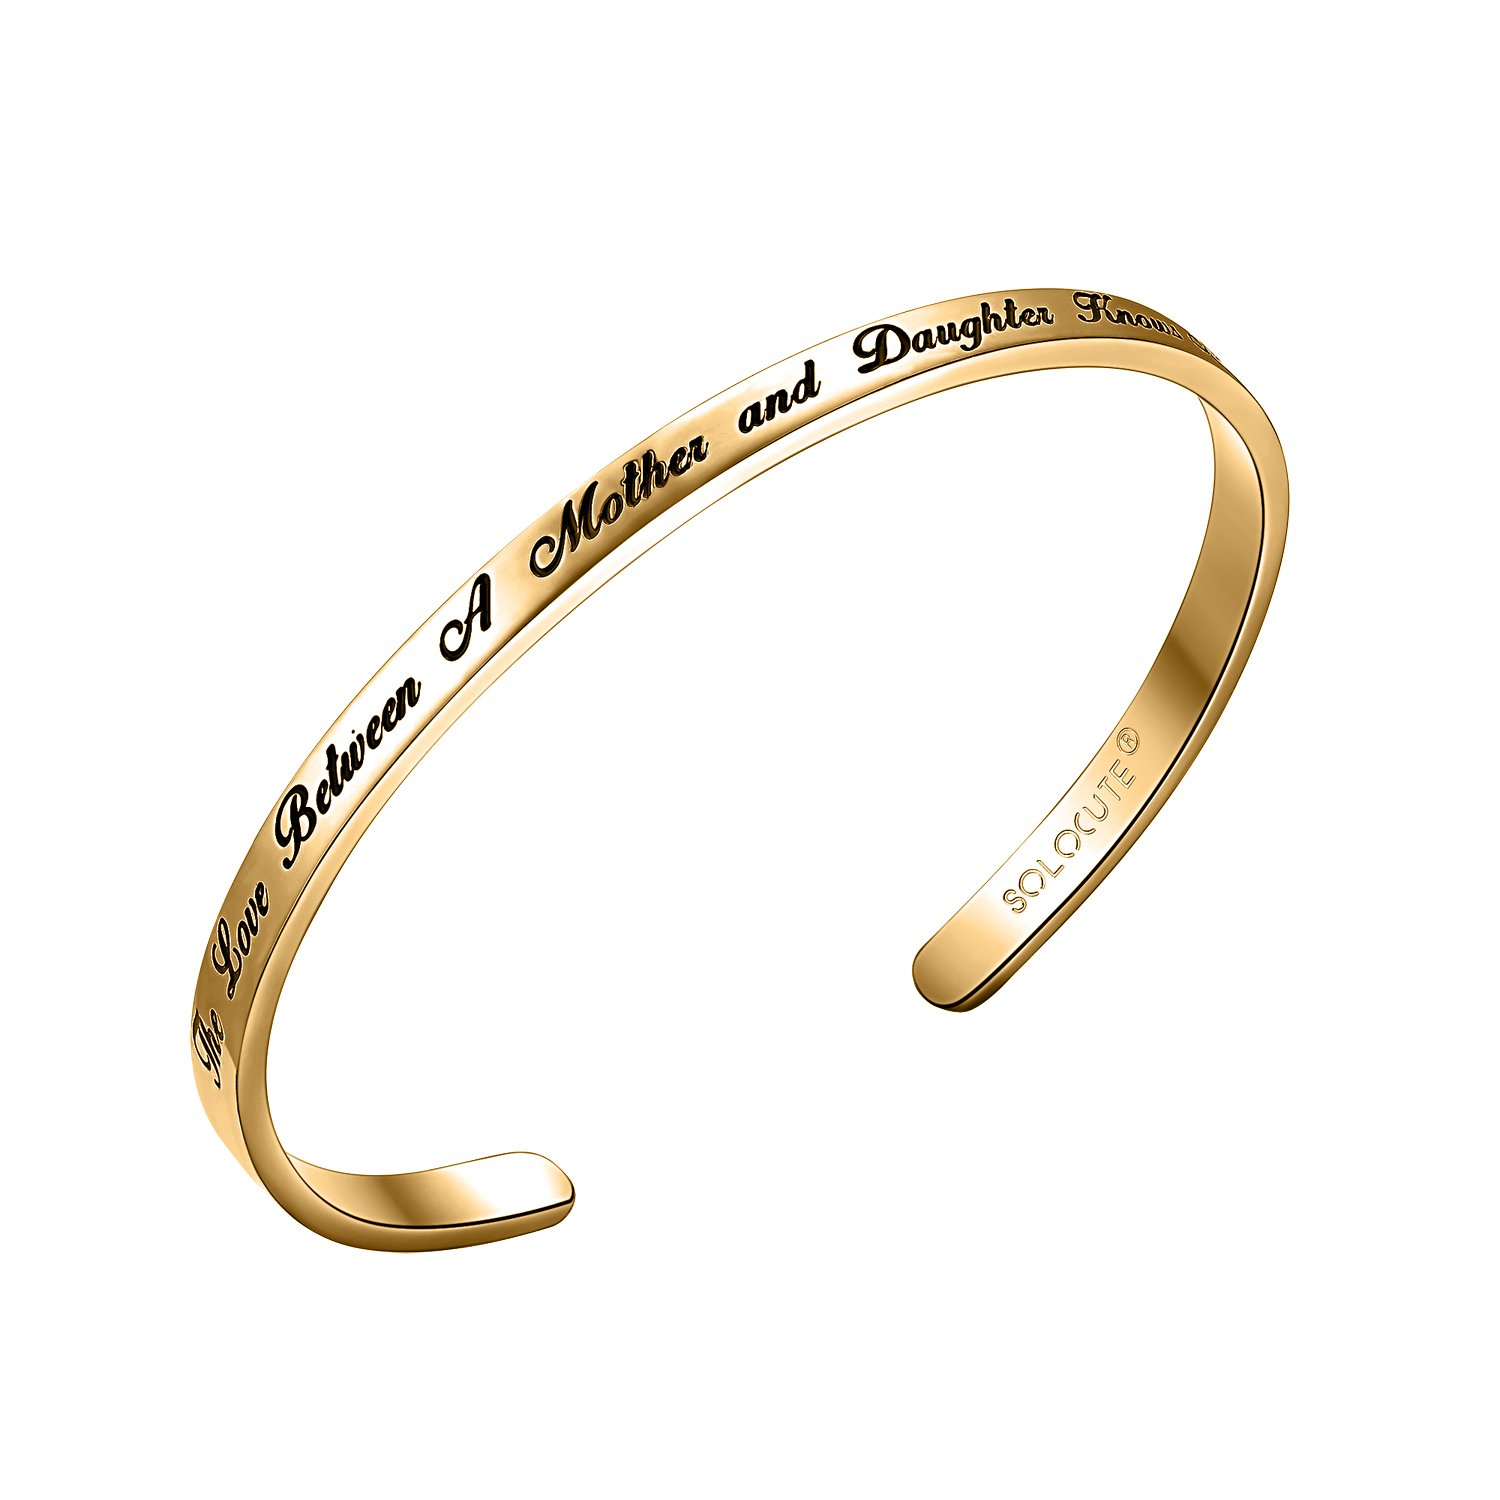 id bangles z org love exclusive jewelry screw bracelet bracelets cartier tricolor j at bangle gold brace